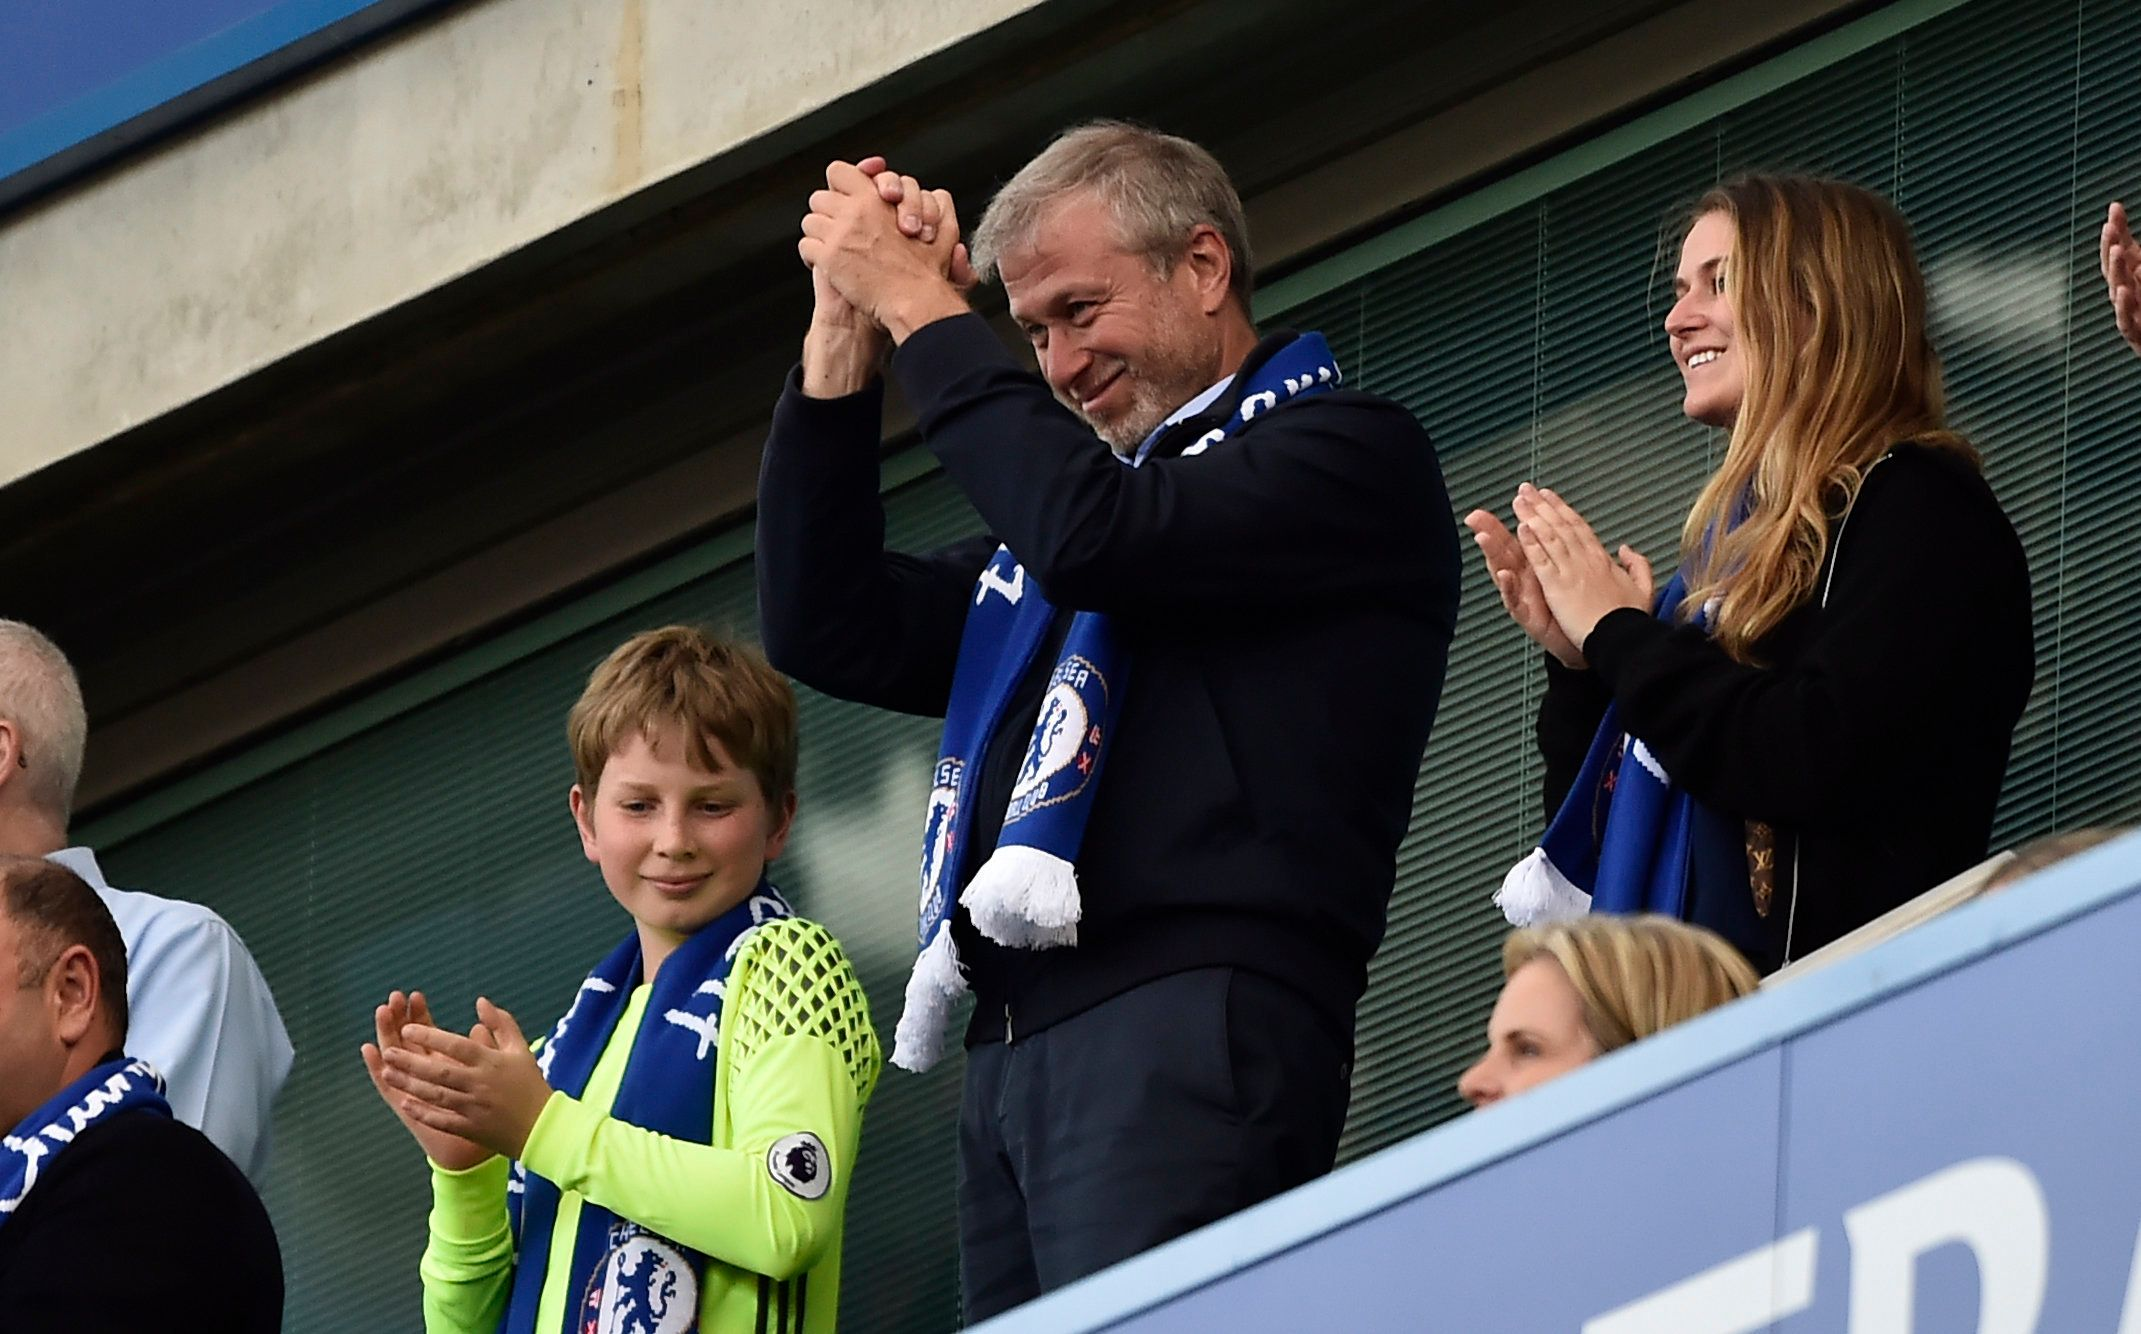 Russia's Abramovich obtains Israeli citizenship to become Israel's wealthiest man